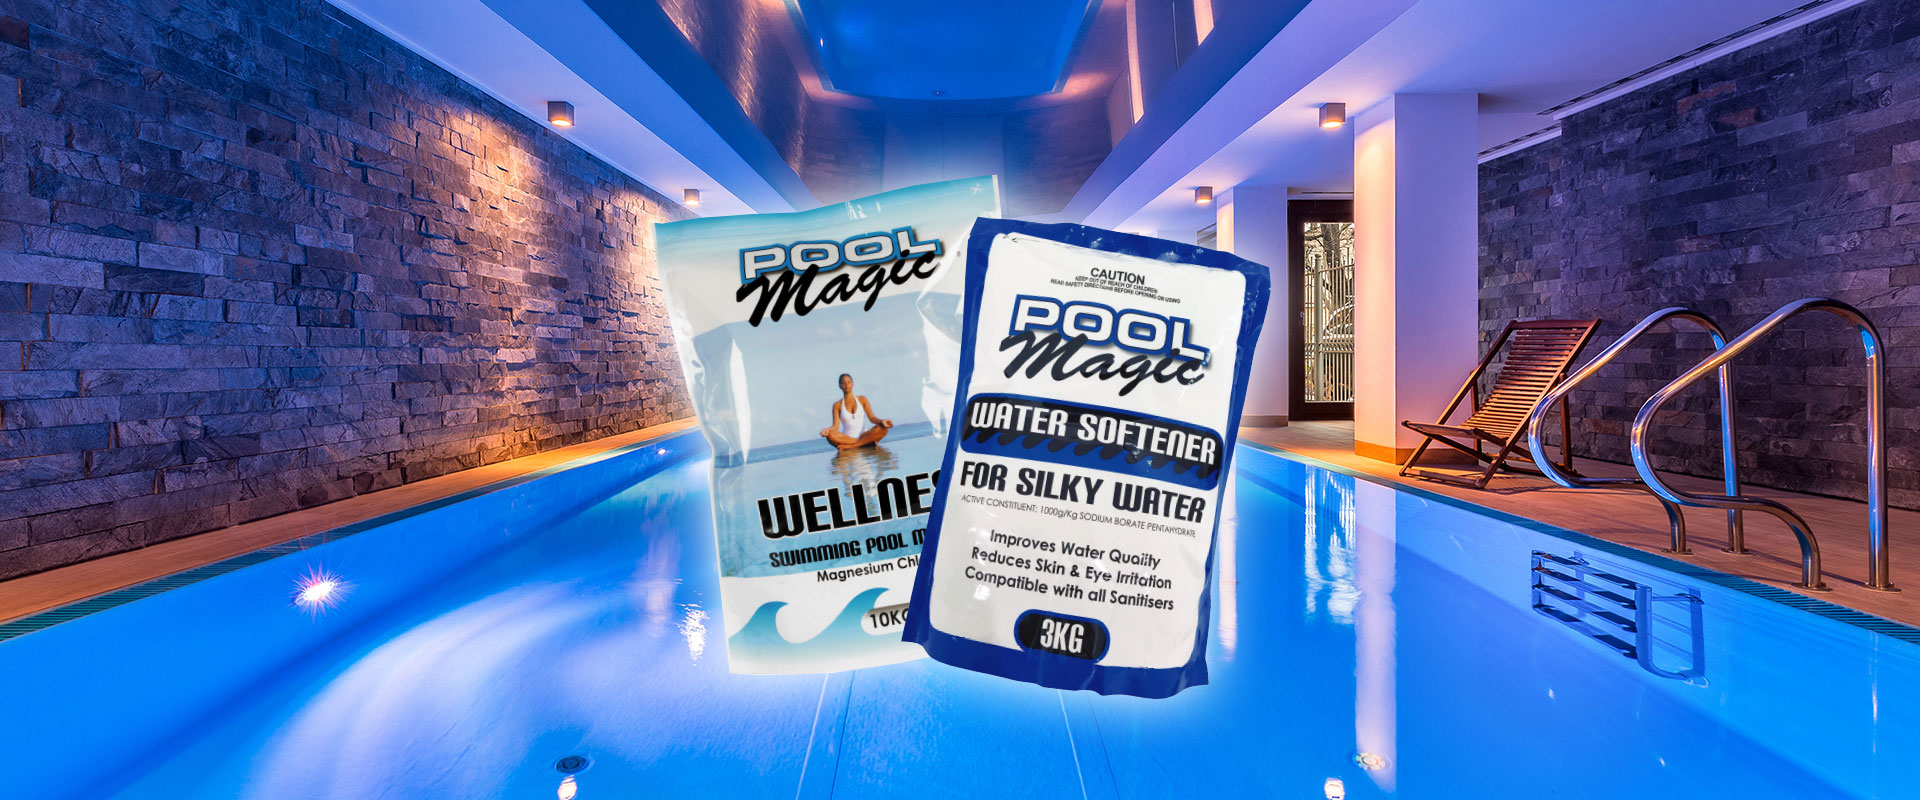 The Ultimate Healthy Pool & Spa Experience